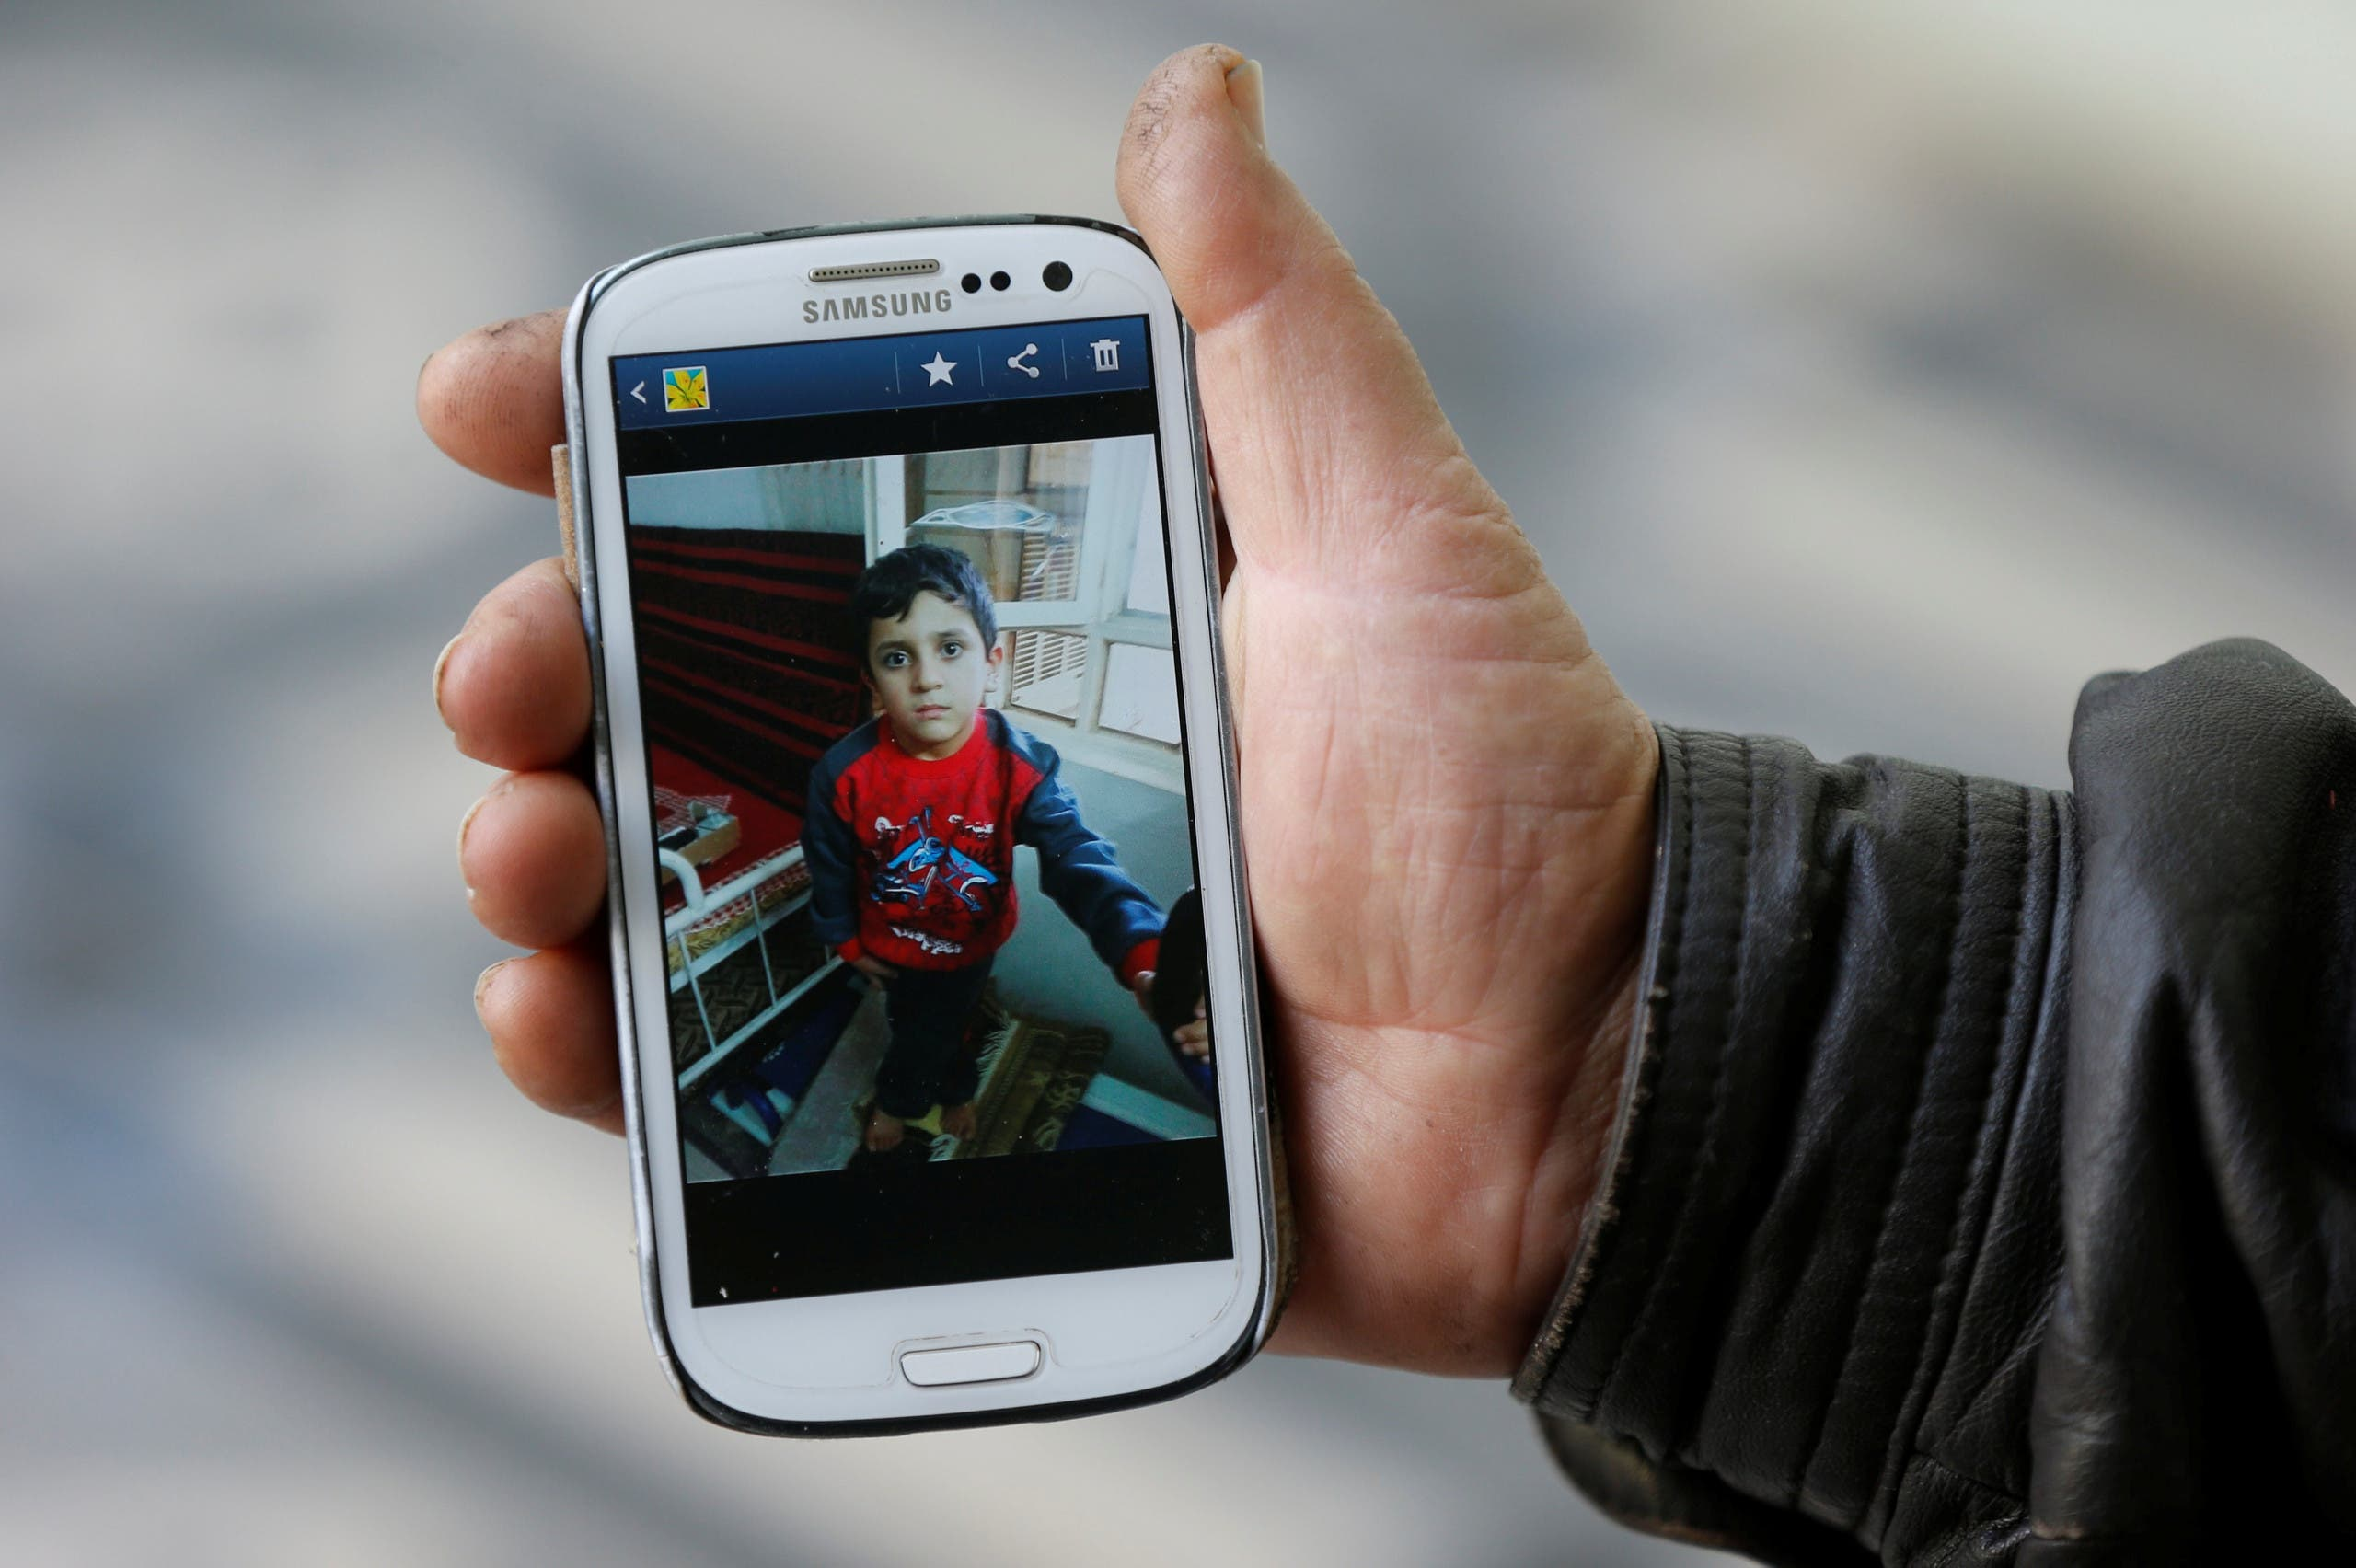 Abu Ahmed, who bought Yazidi boy Ayman from Islamic State militants in Mosul, shows a picture of Ayman on his phone in Rashidiya, north of Mosul, Iraq, January 30, 2017. reuters